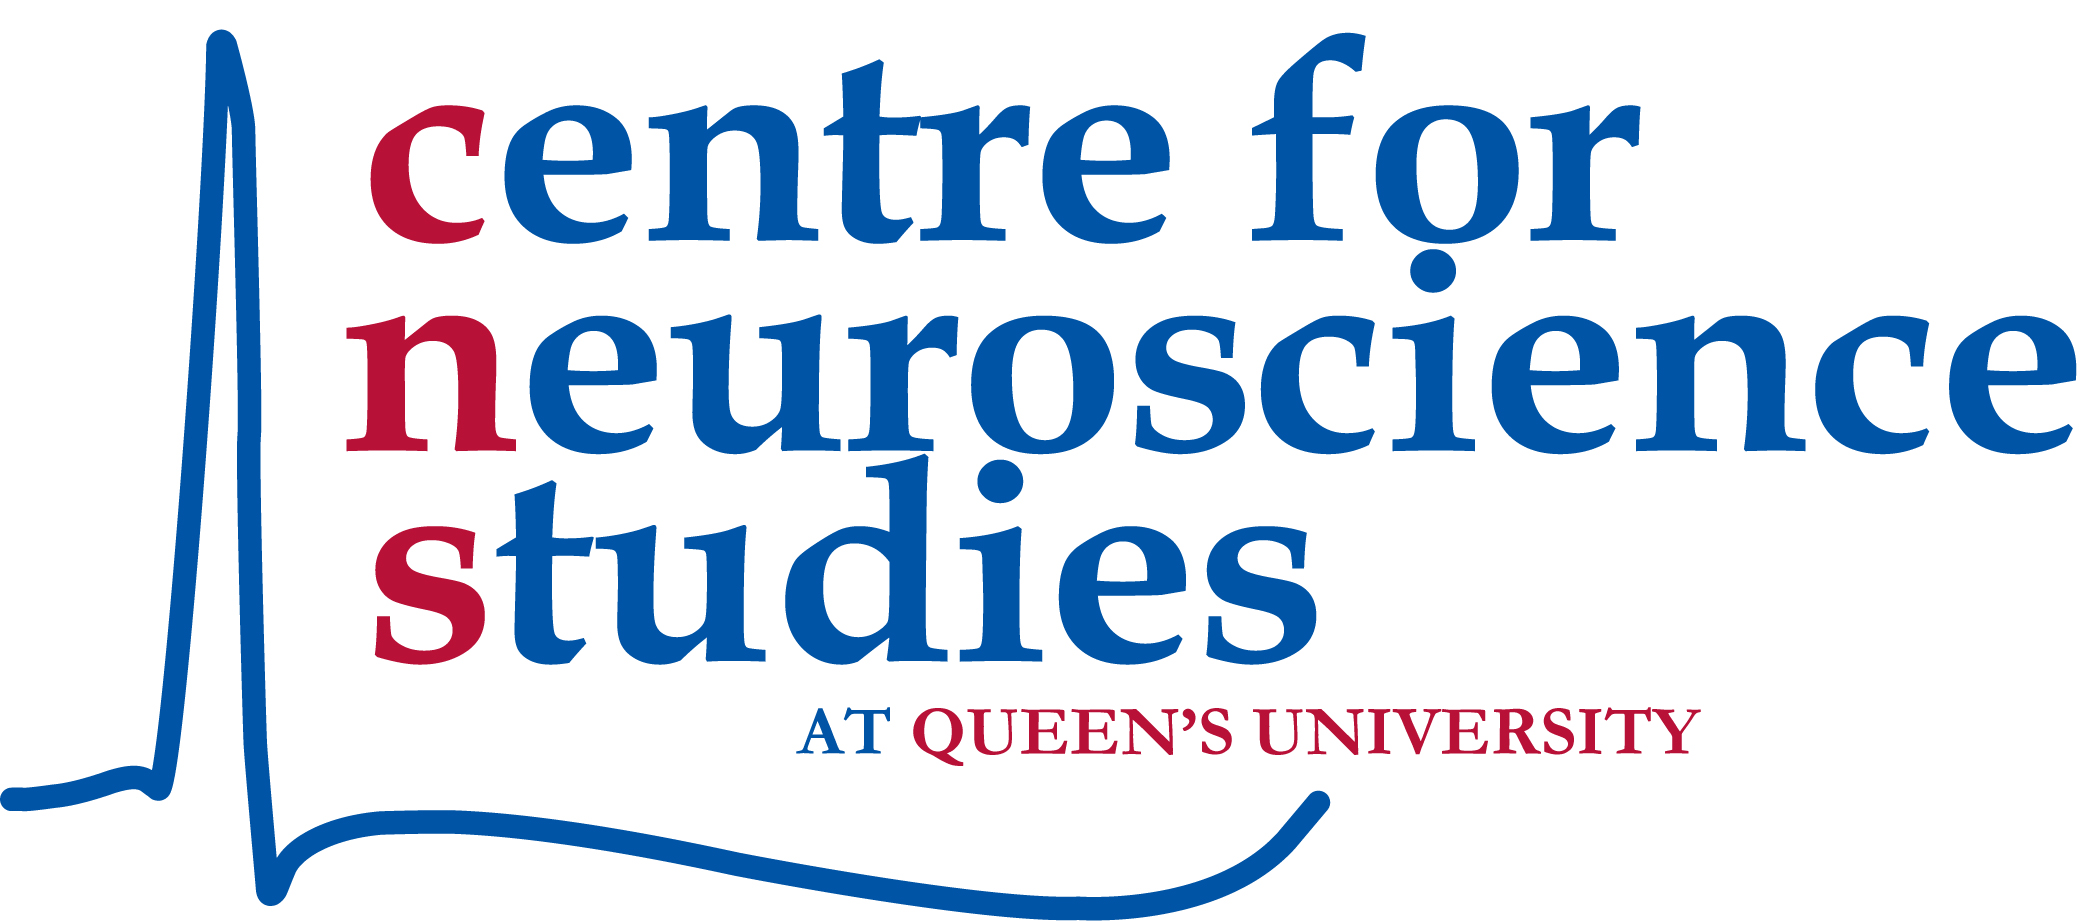 Centre for neuroscience studies